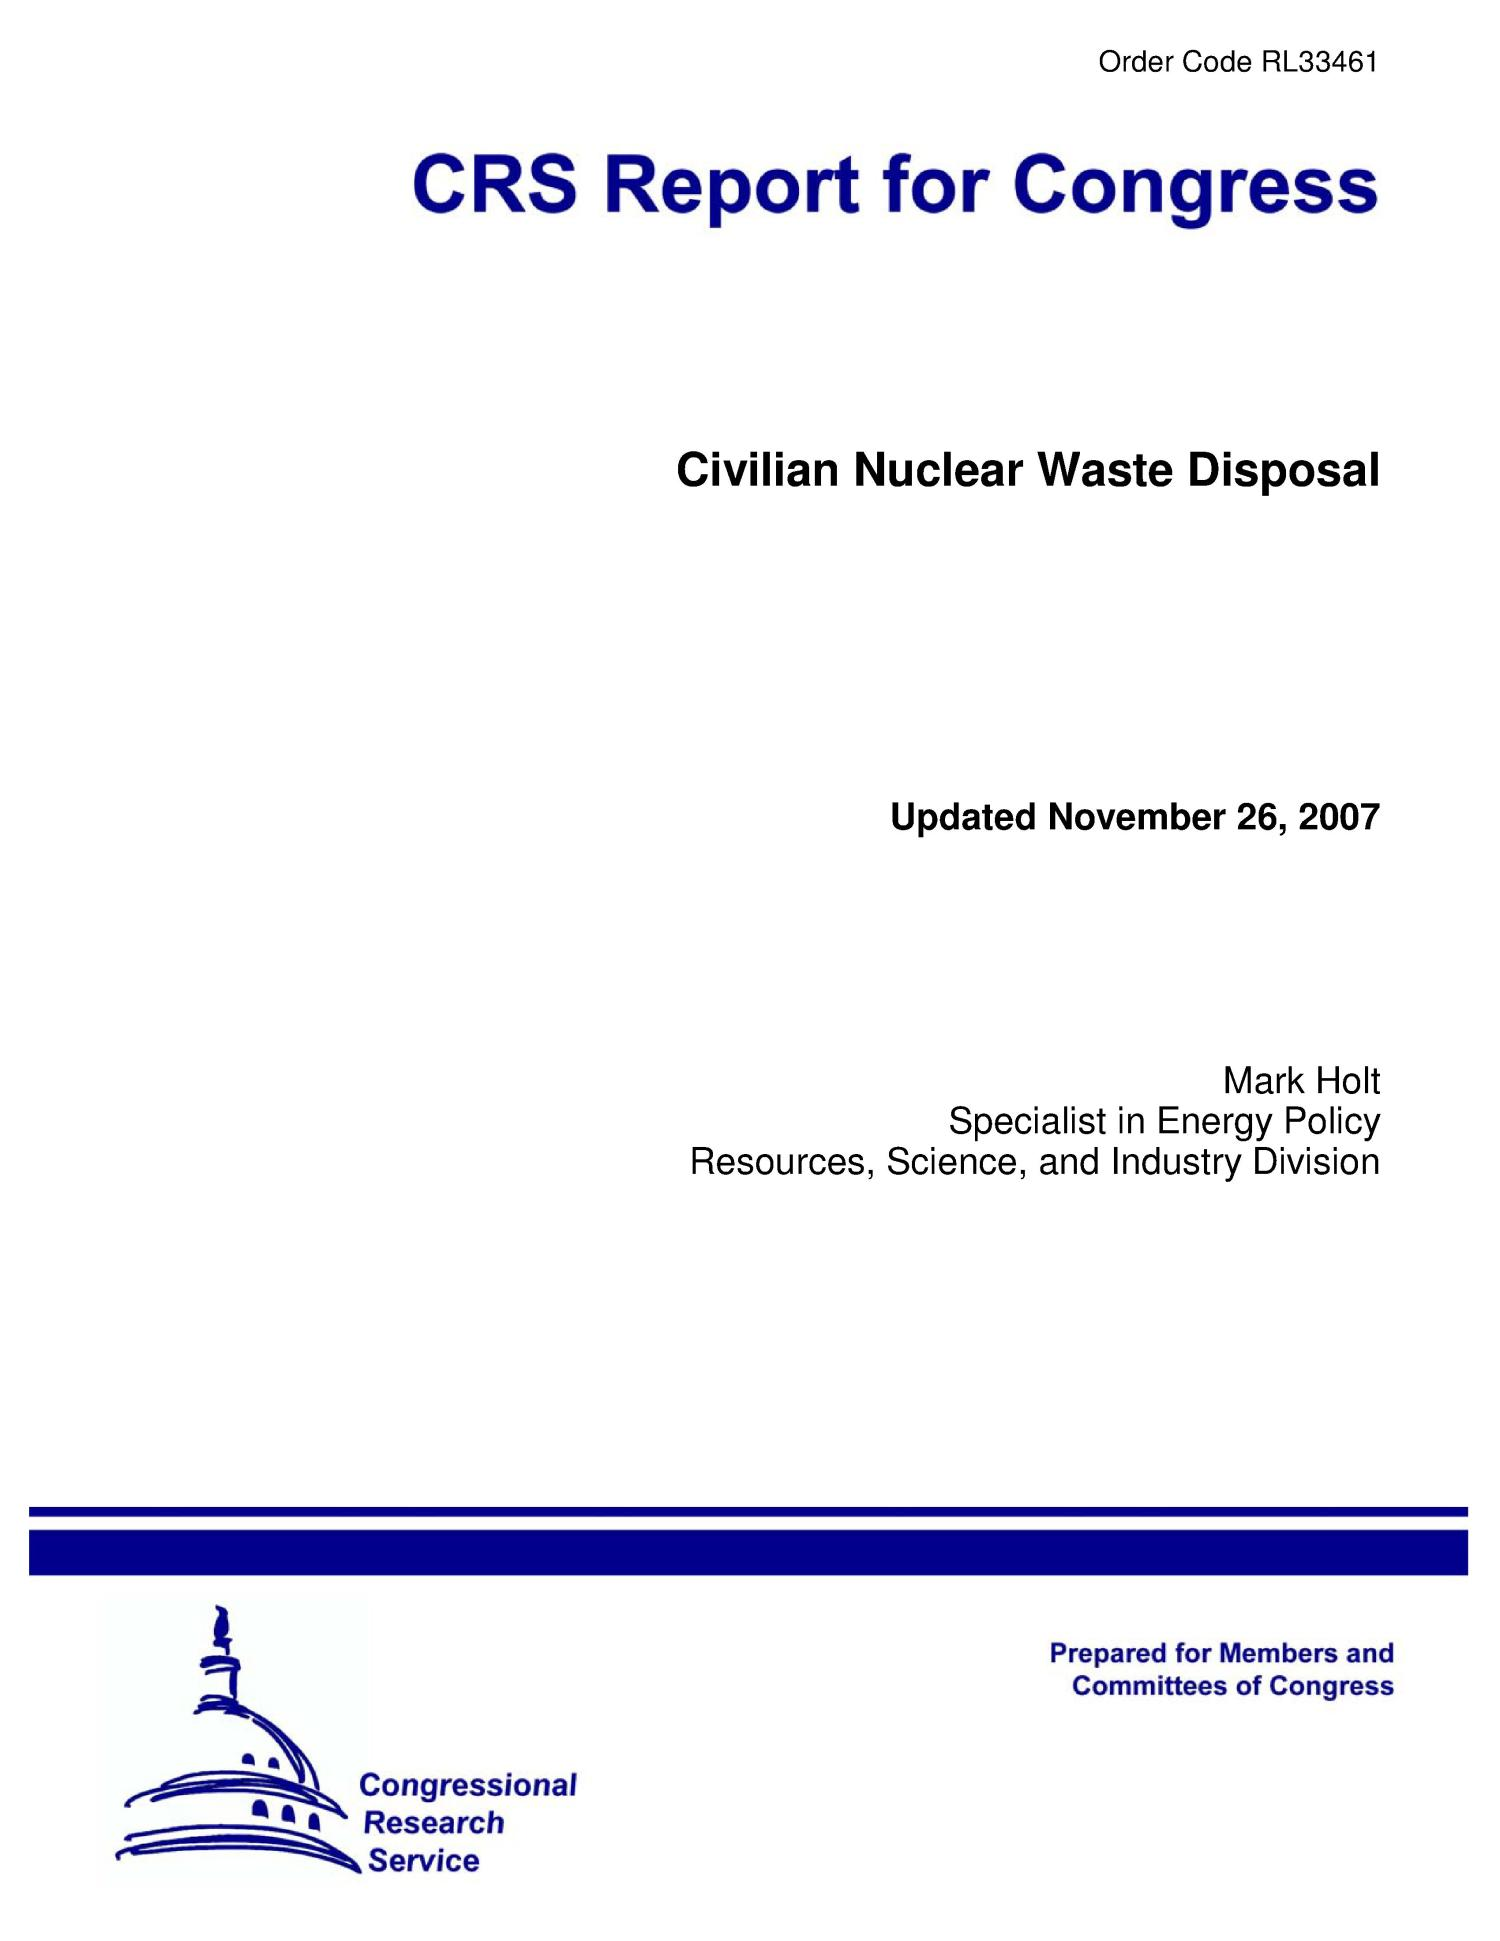 Civilian Nuclear Waste Disposal                                                                                                      [Sequence #]: 1 of 24